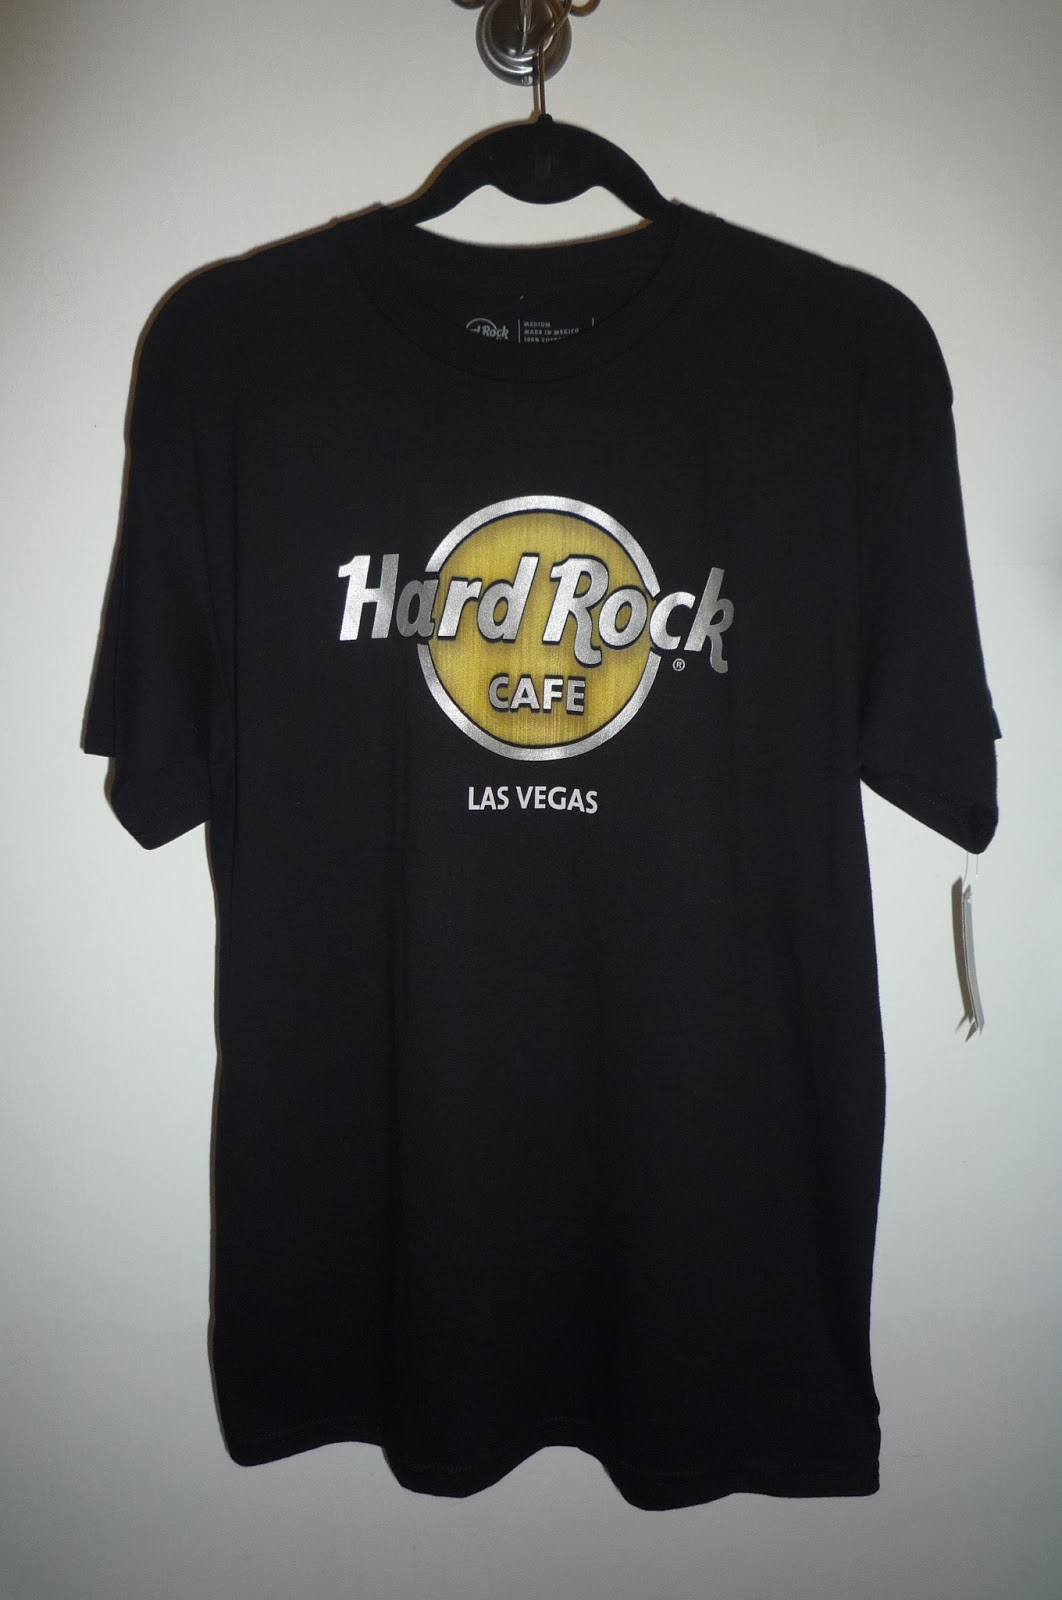 Busybeeroom Welcomes You Hard Rock Cafe Quot Las Vegas Quot T Shirt